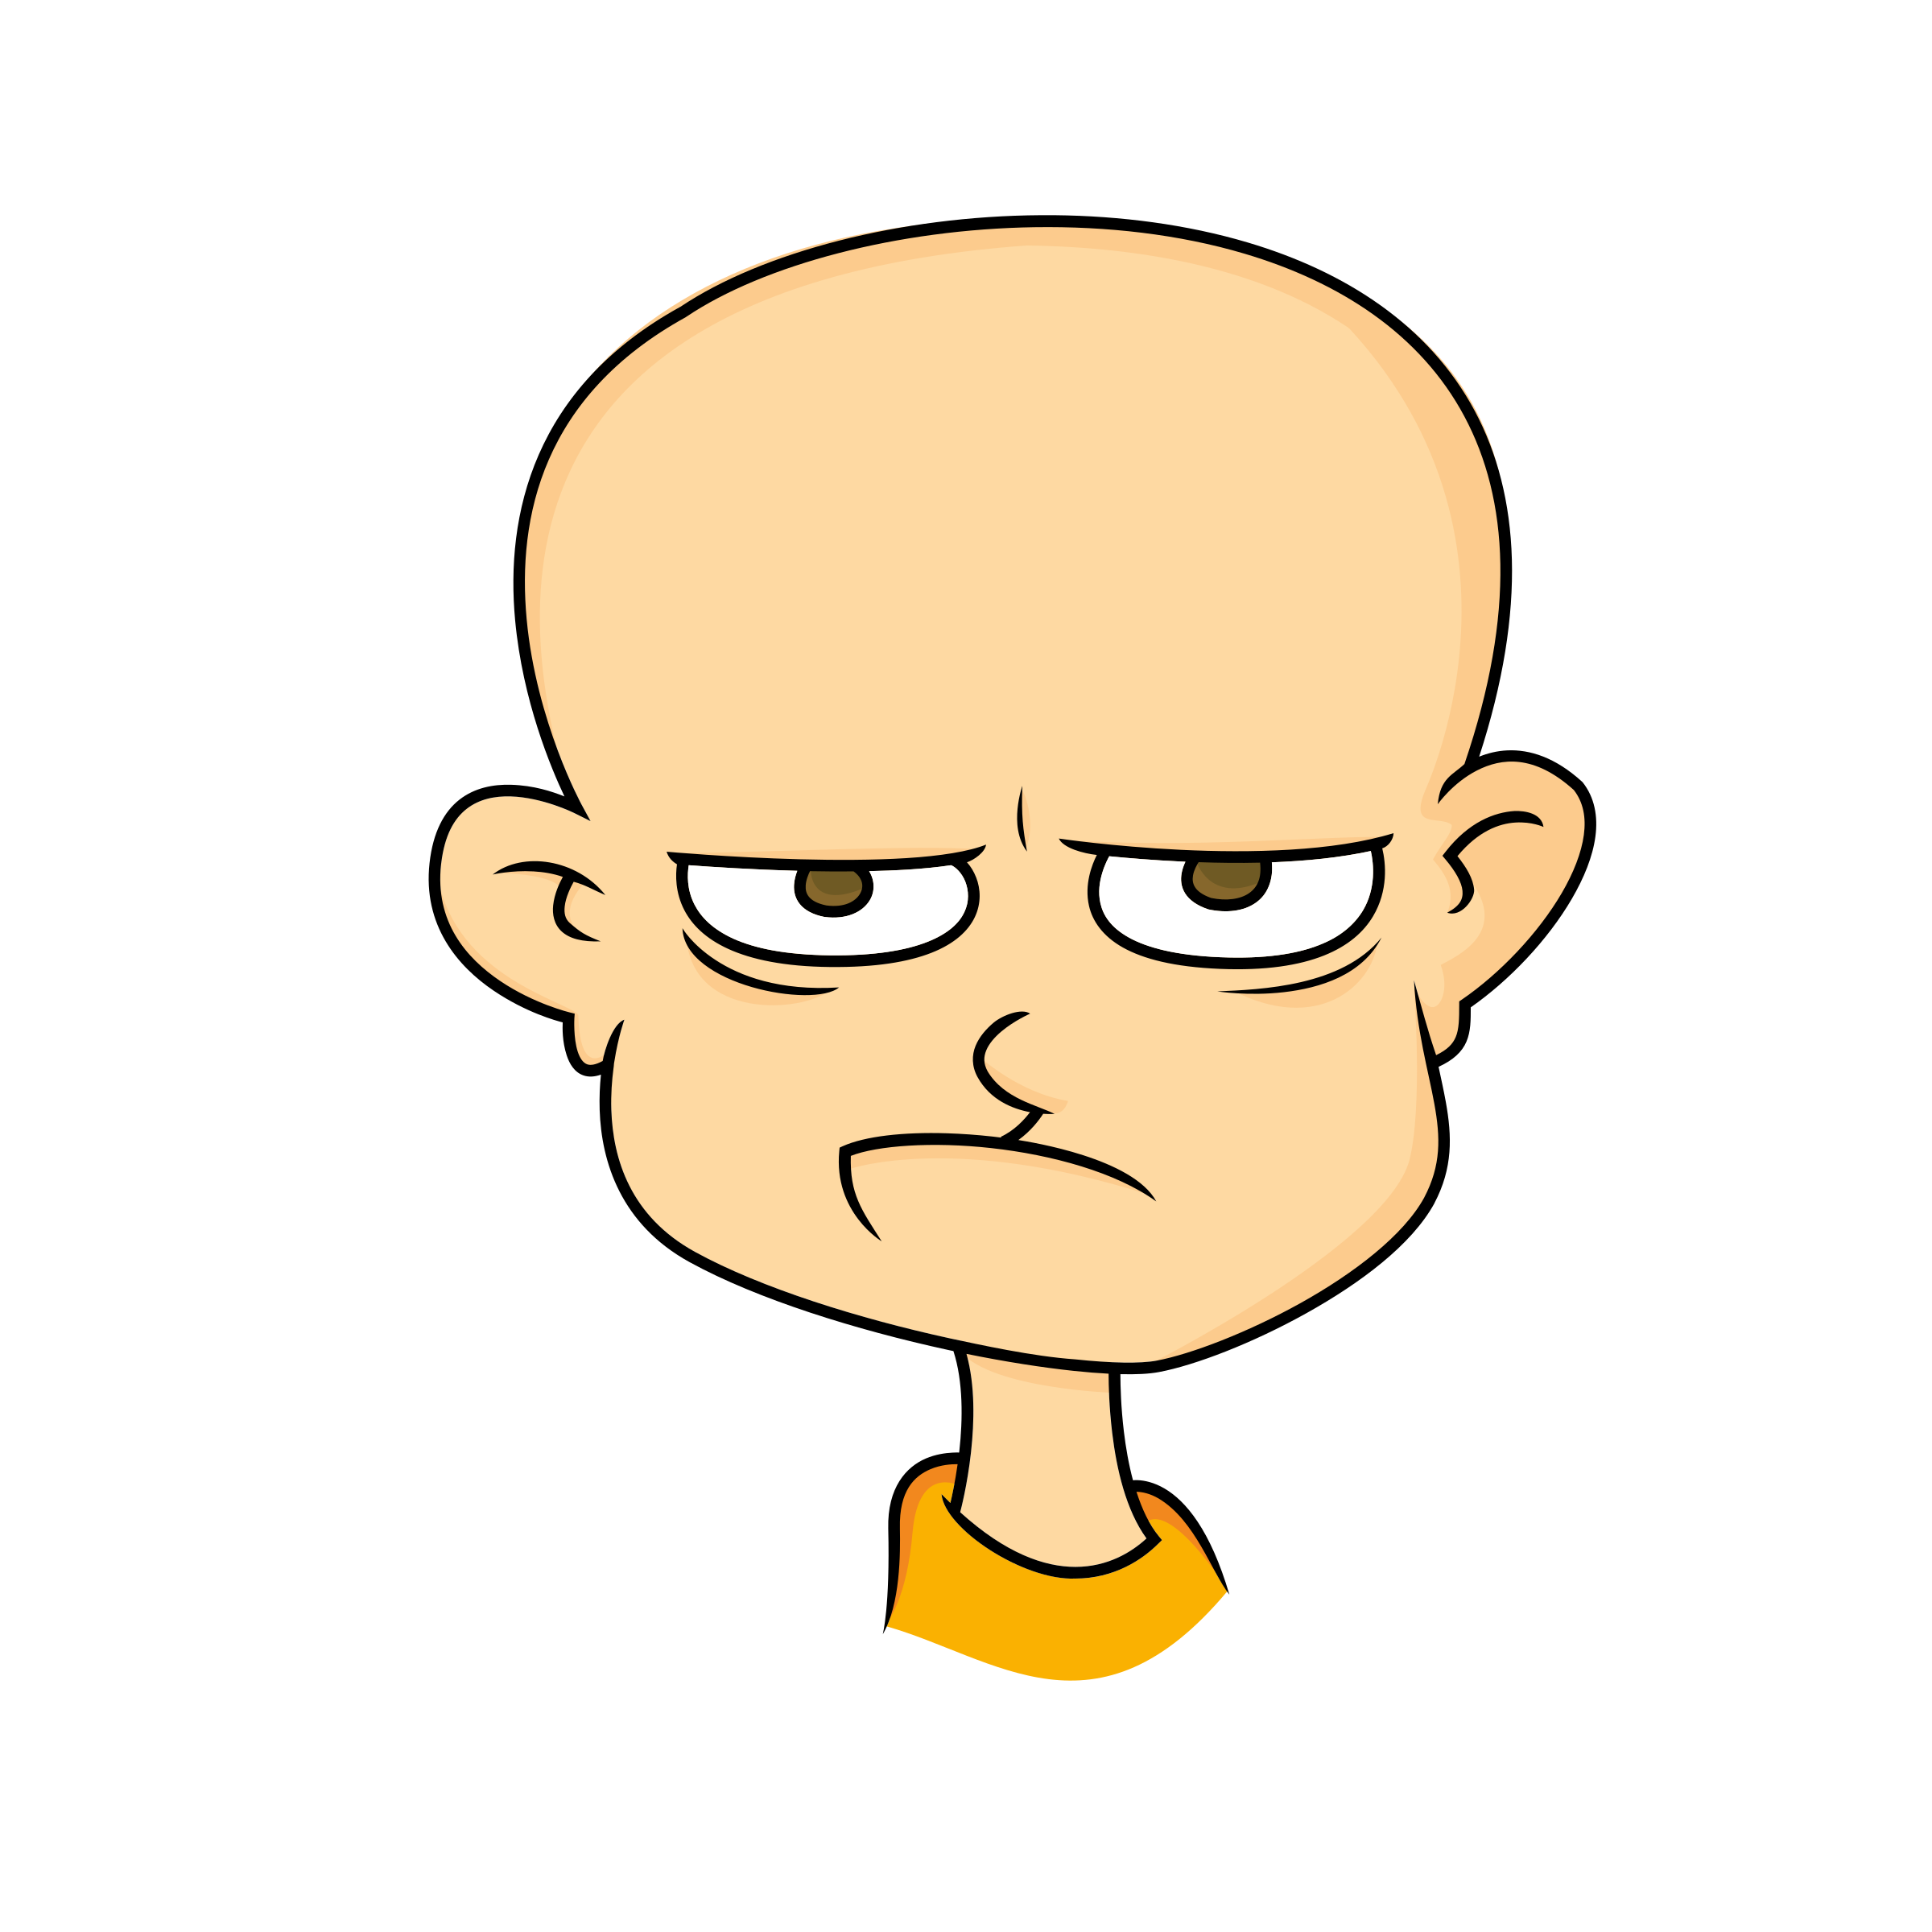 Angry cartoon images